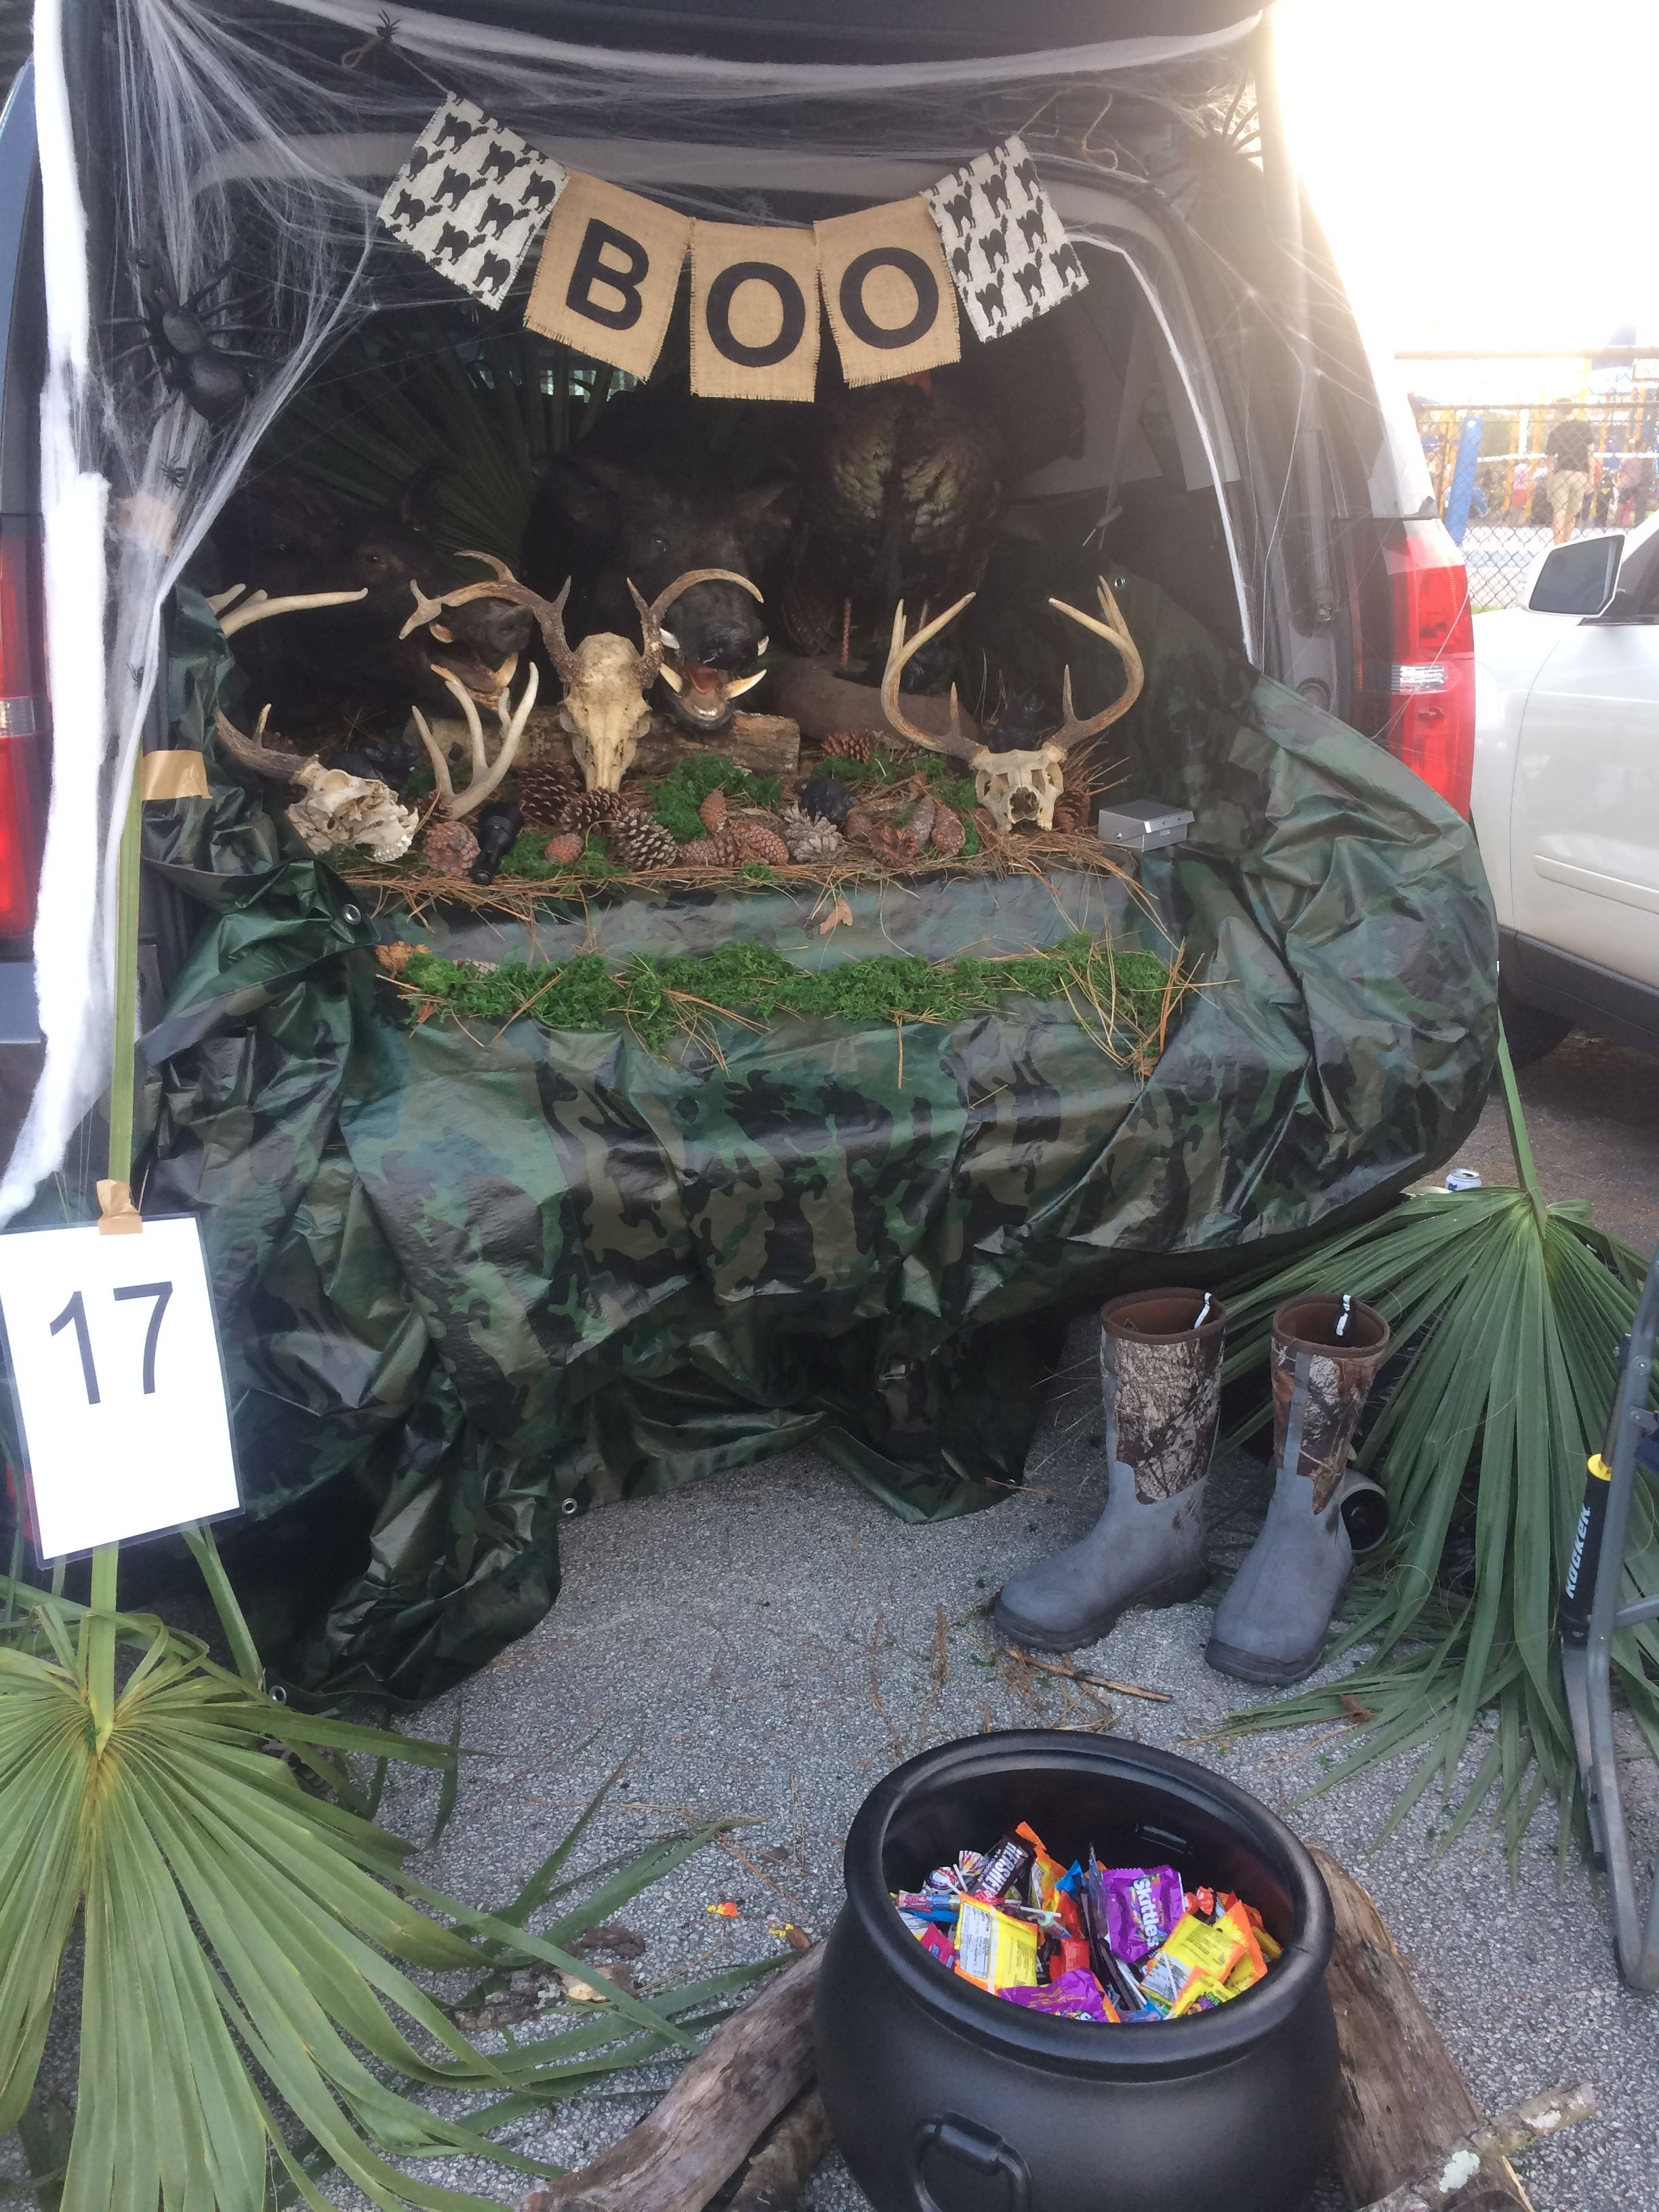 "Trunk Or Treat Ideas For Pickup Trucks : trunk, treat, ideas, pickup, trucks, Hunting, Theme, ""trunk, Treat"", Trunk, Treat,, Truck, Themes"